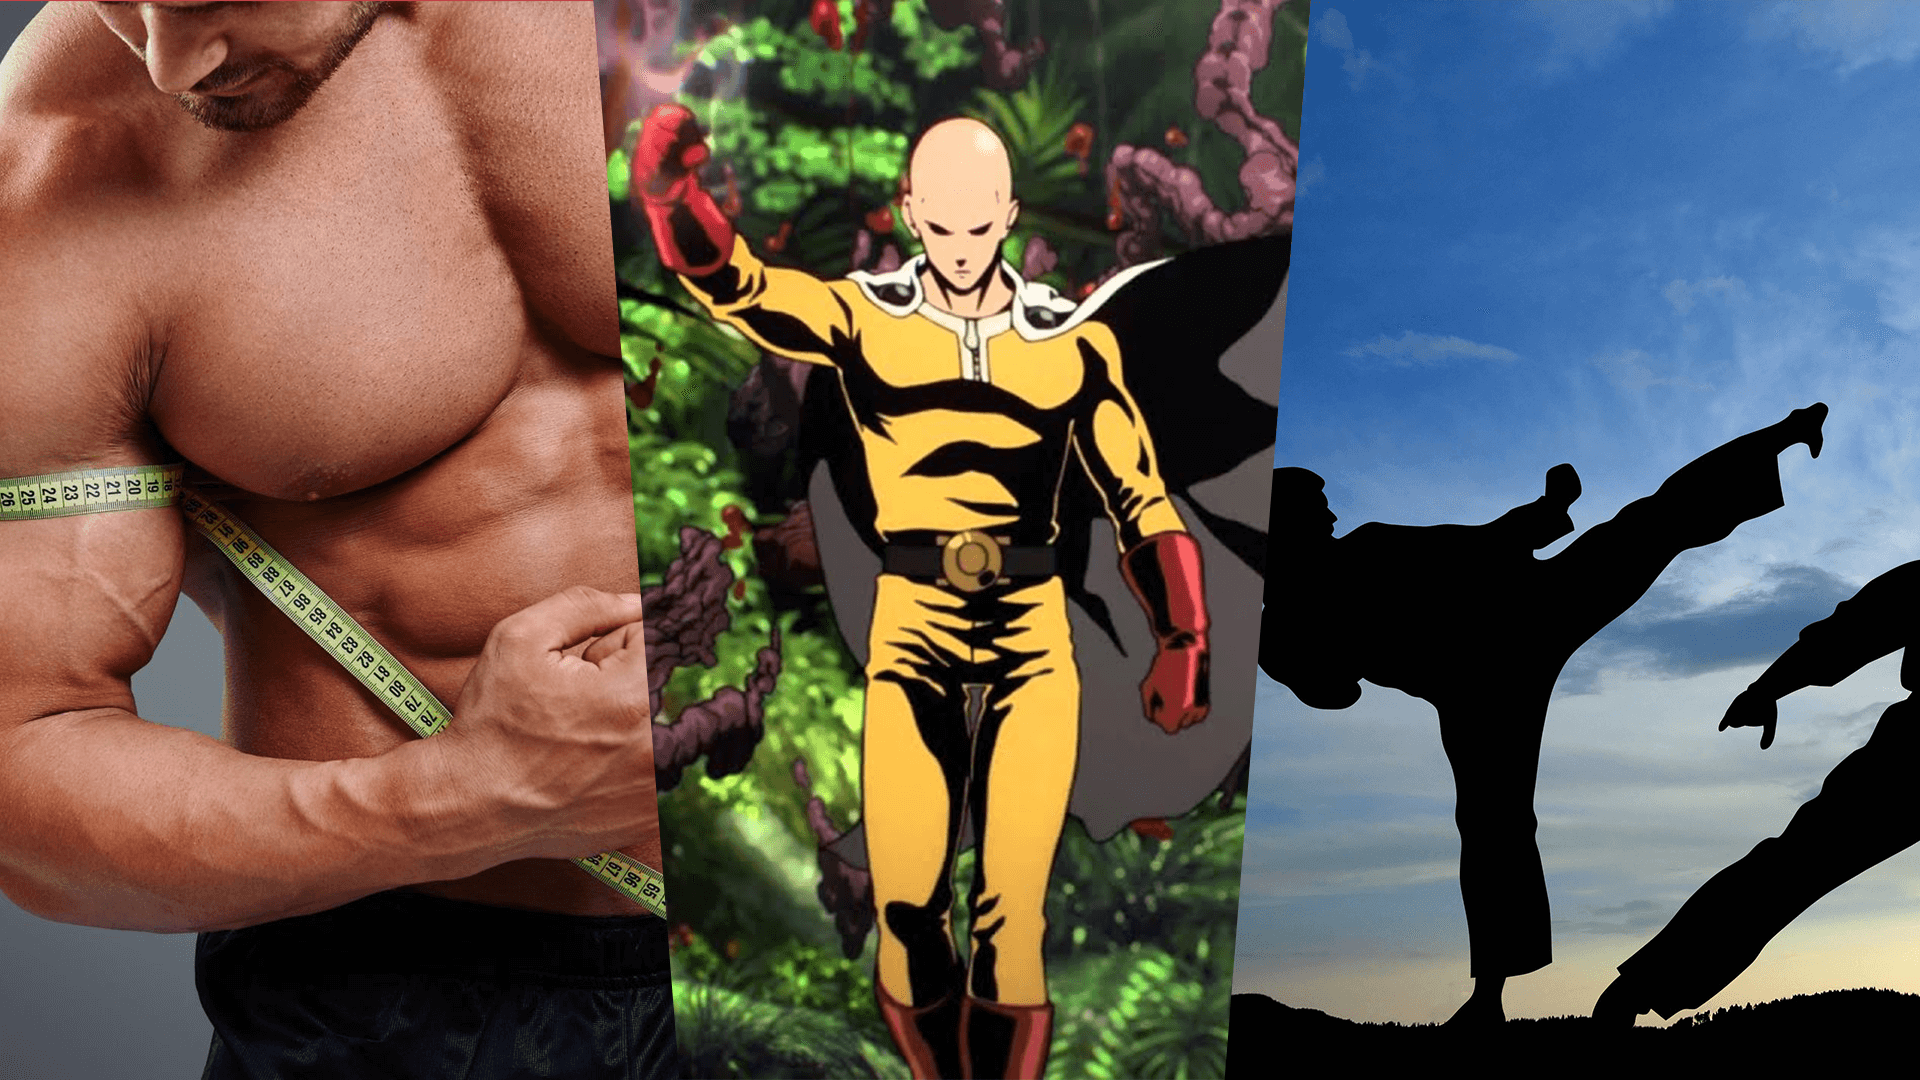 Who should do the Saitama workout